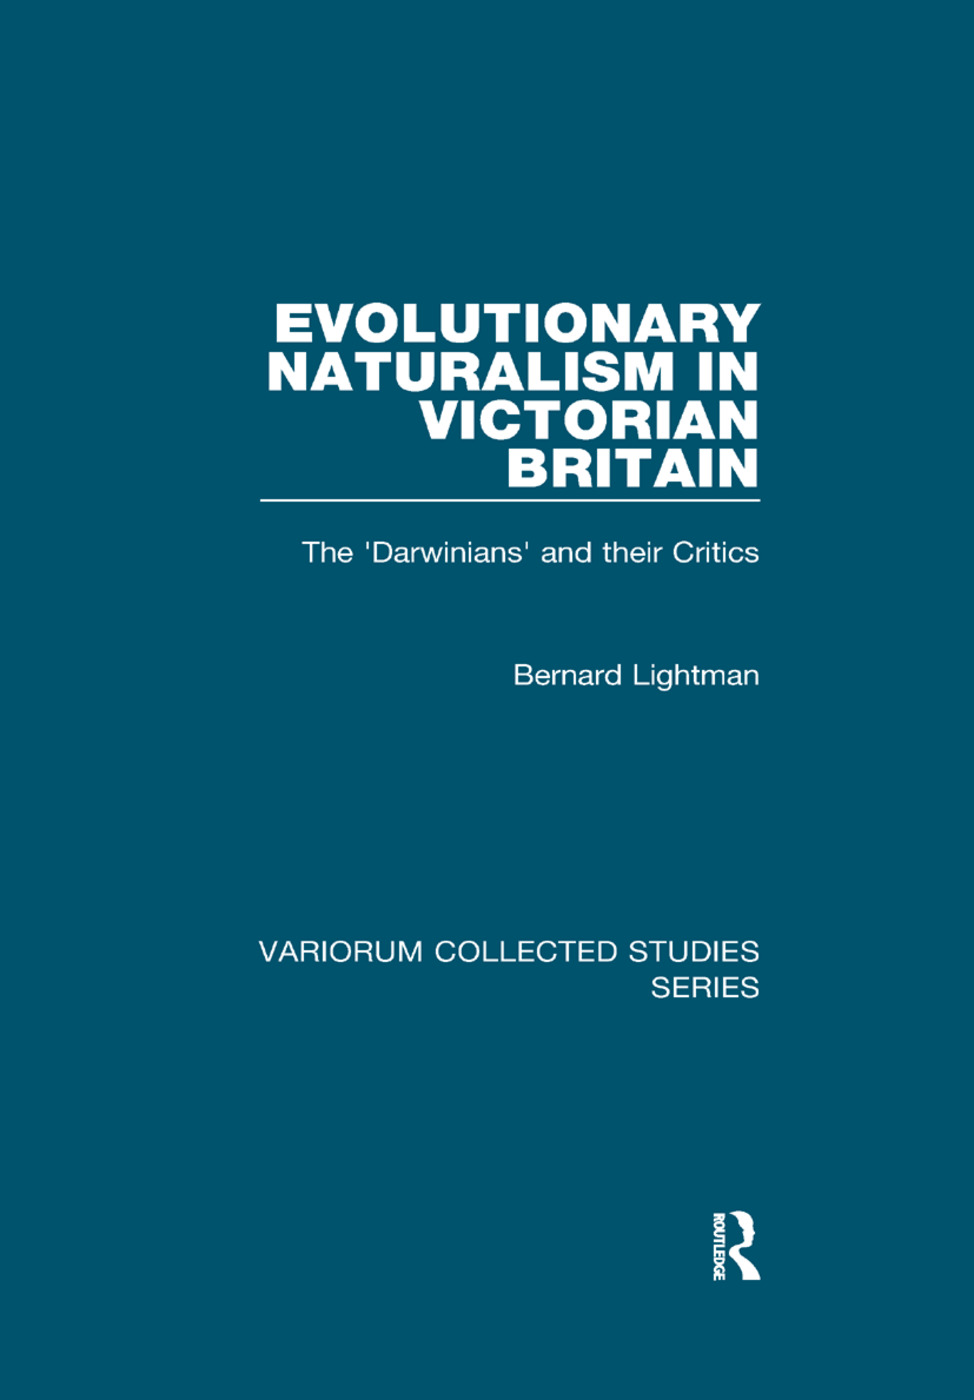 Evolutionary Naturalism in Victorian Britain: The 'Darwinians' and their Critics book cover